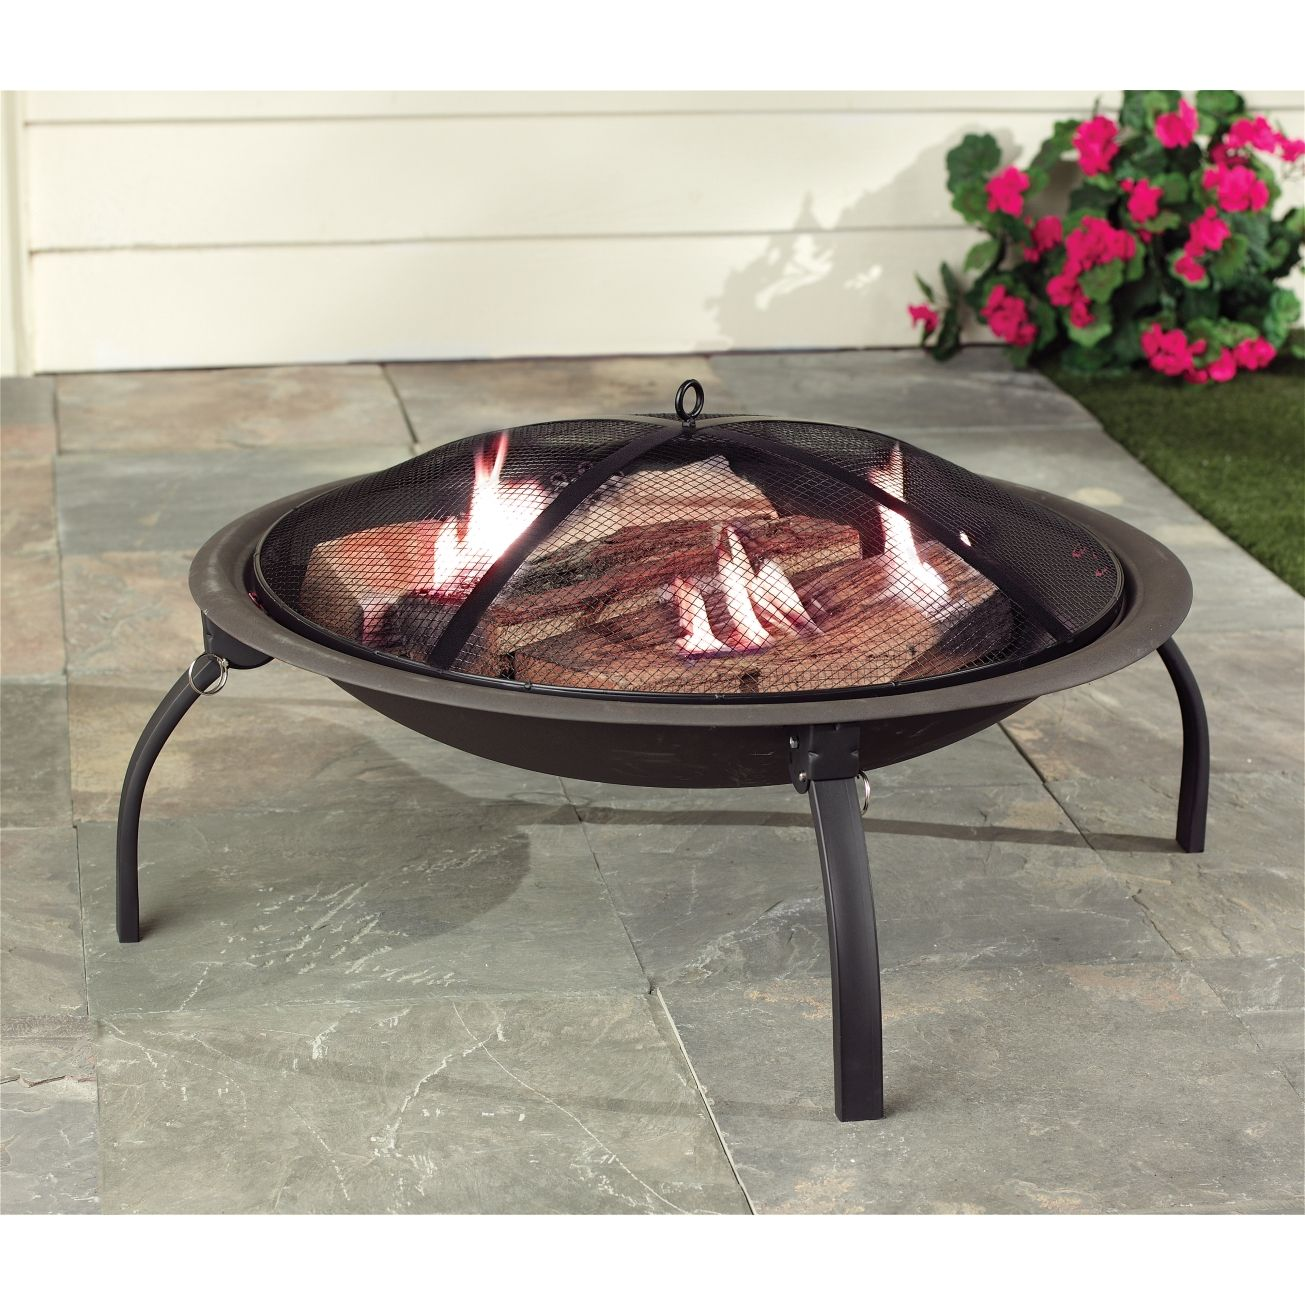 Living Accents® 28in Portable Firepit - Outdoor Fireplaces ... on Propane Fire Pit Ace Hardware id=35580